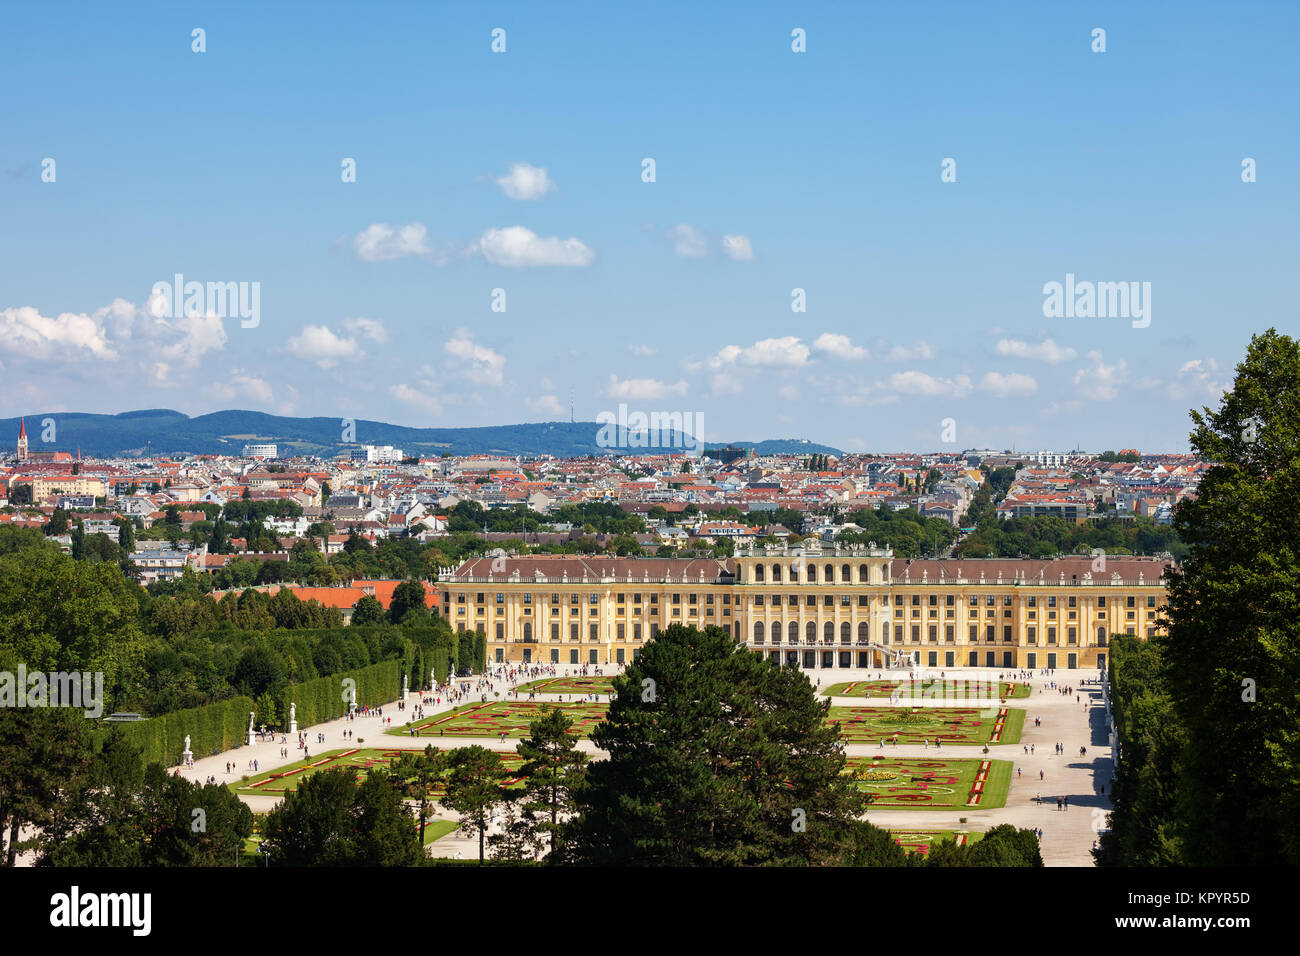 Schonbrunn Palace, imperial summer Baroque residence and garden, city of Vienna cityscape, Austria, Europe - Stock Image